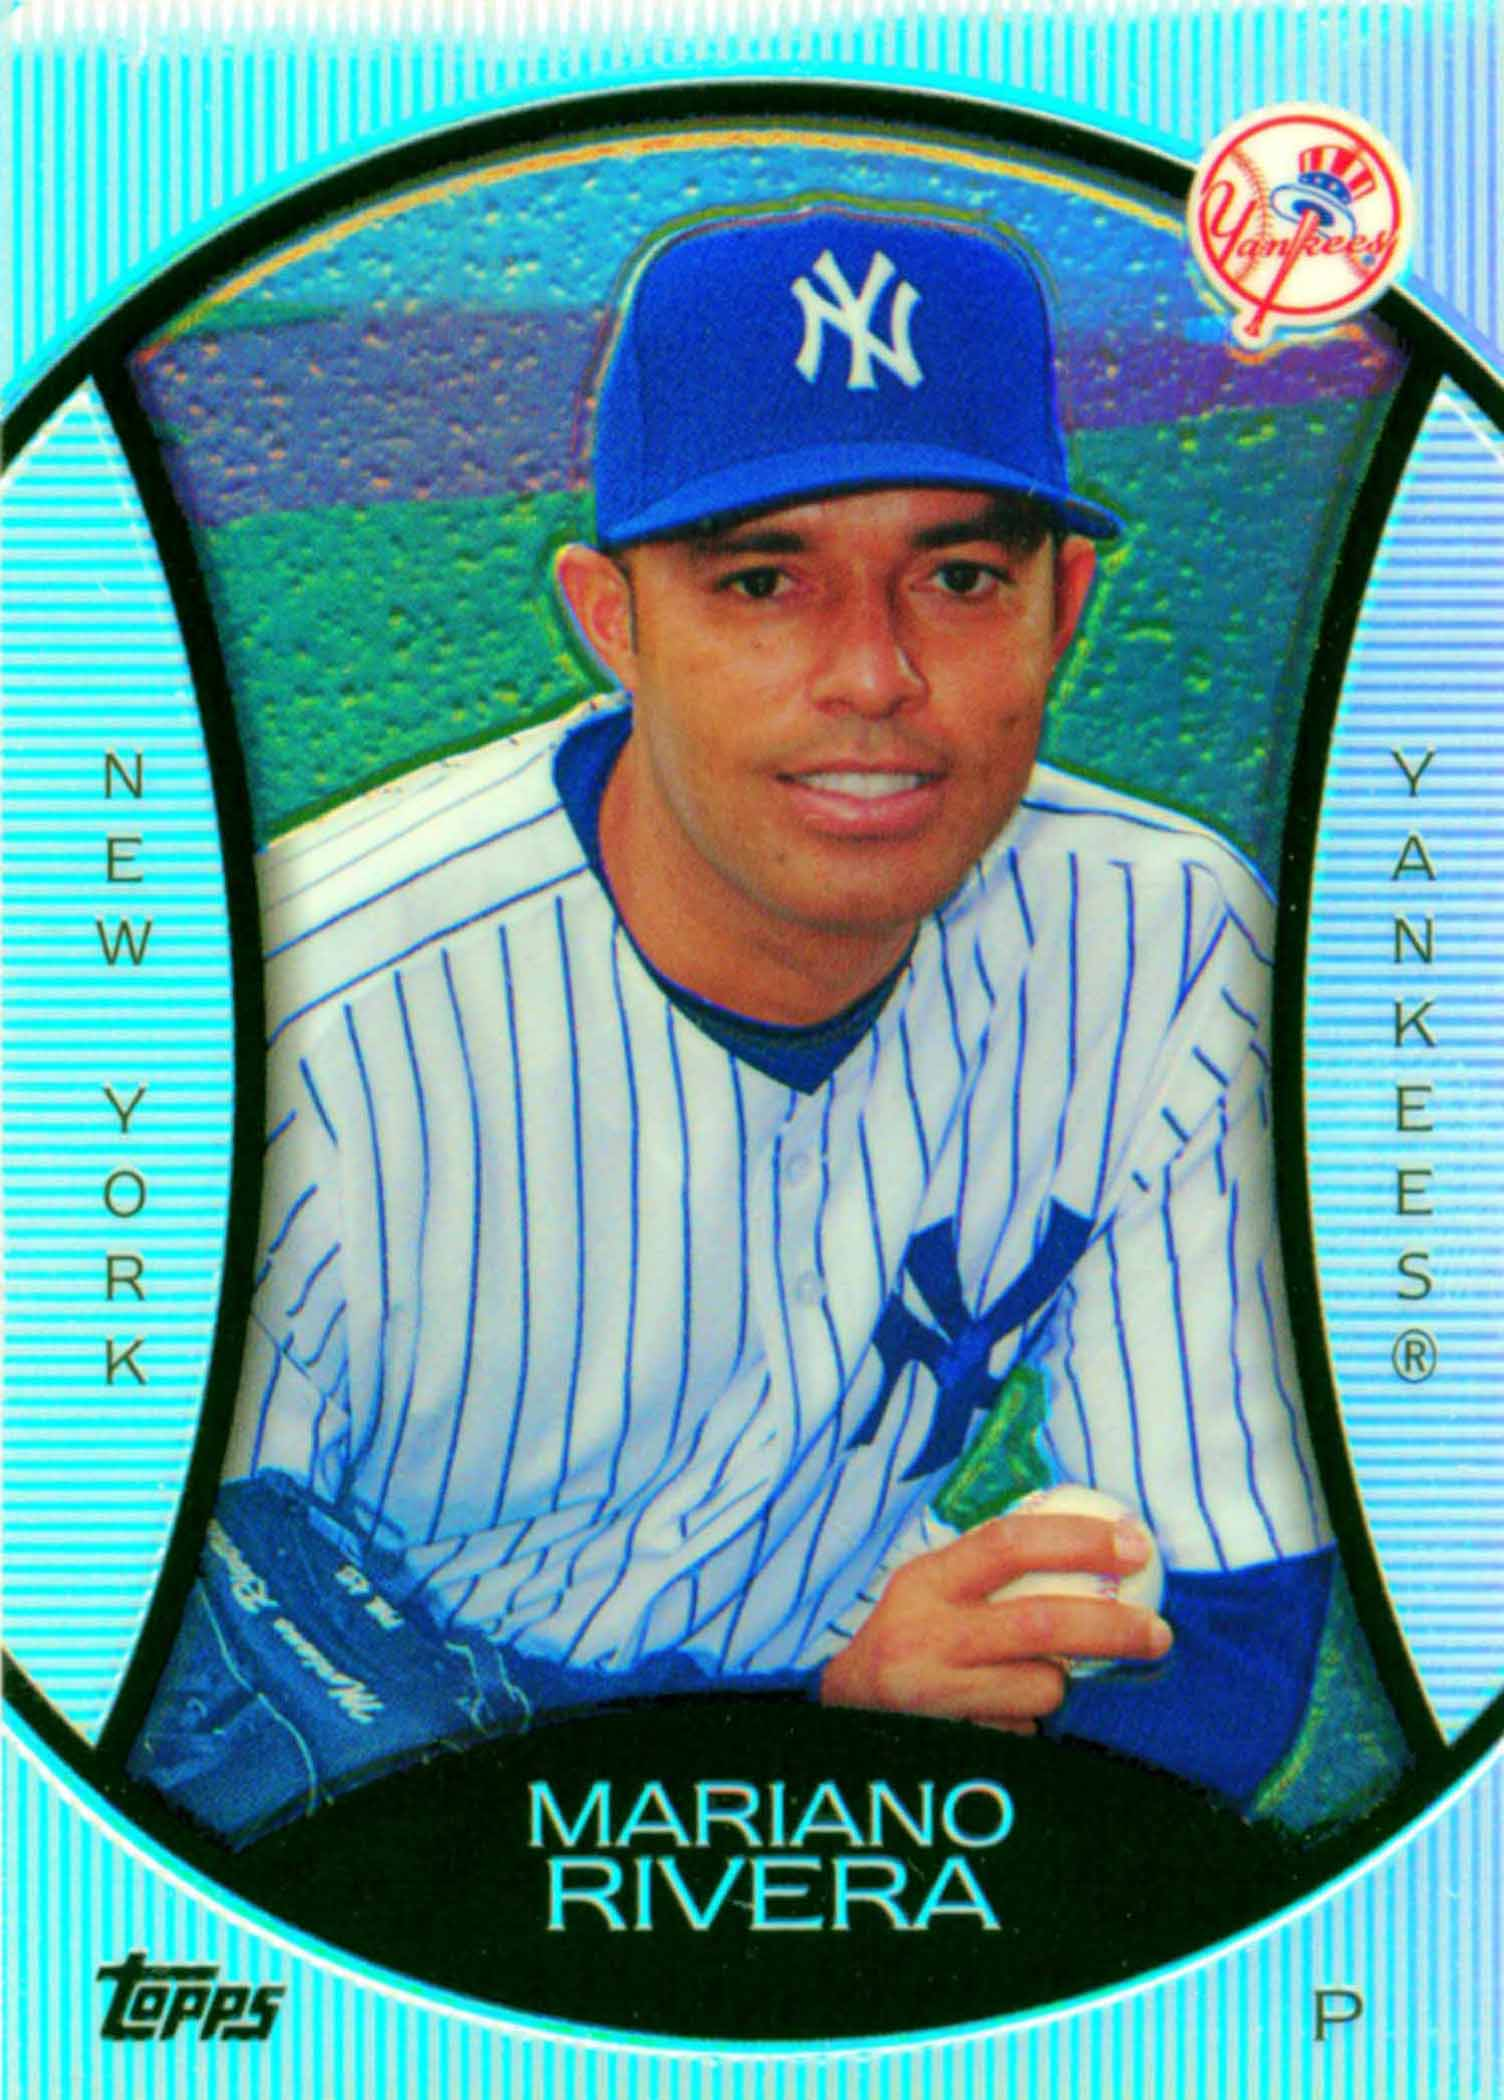 2010 Topps Legends Platinum Chrome WalMart Cereal